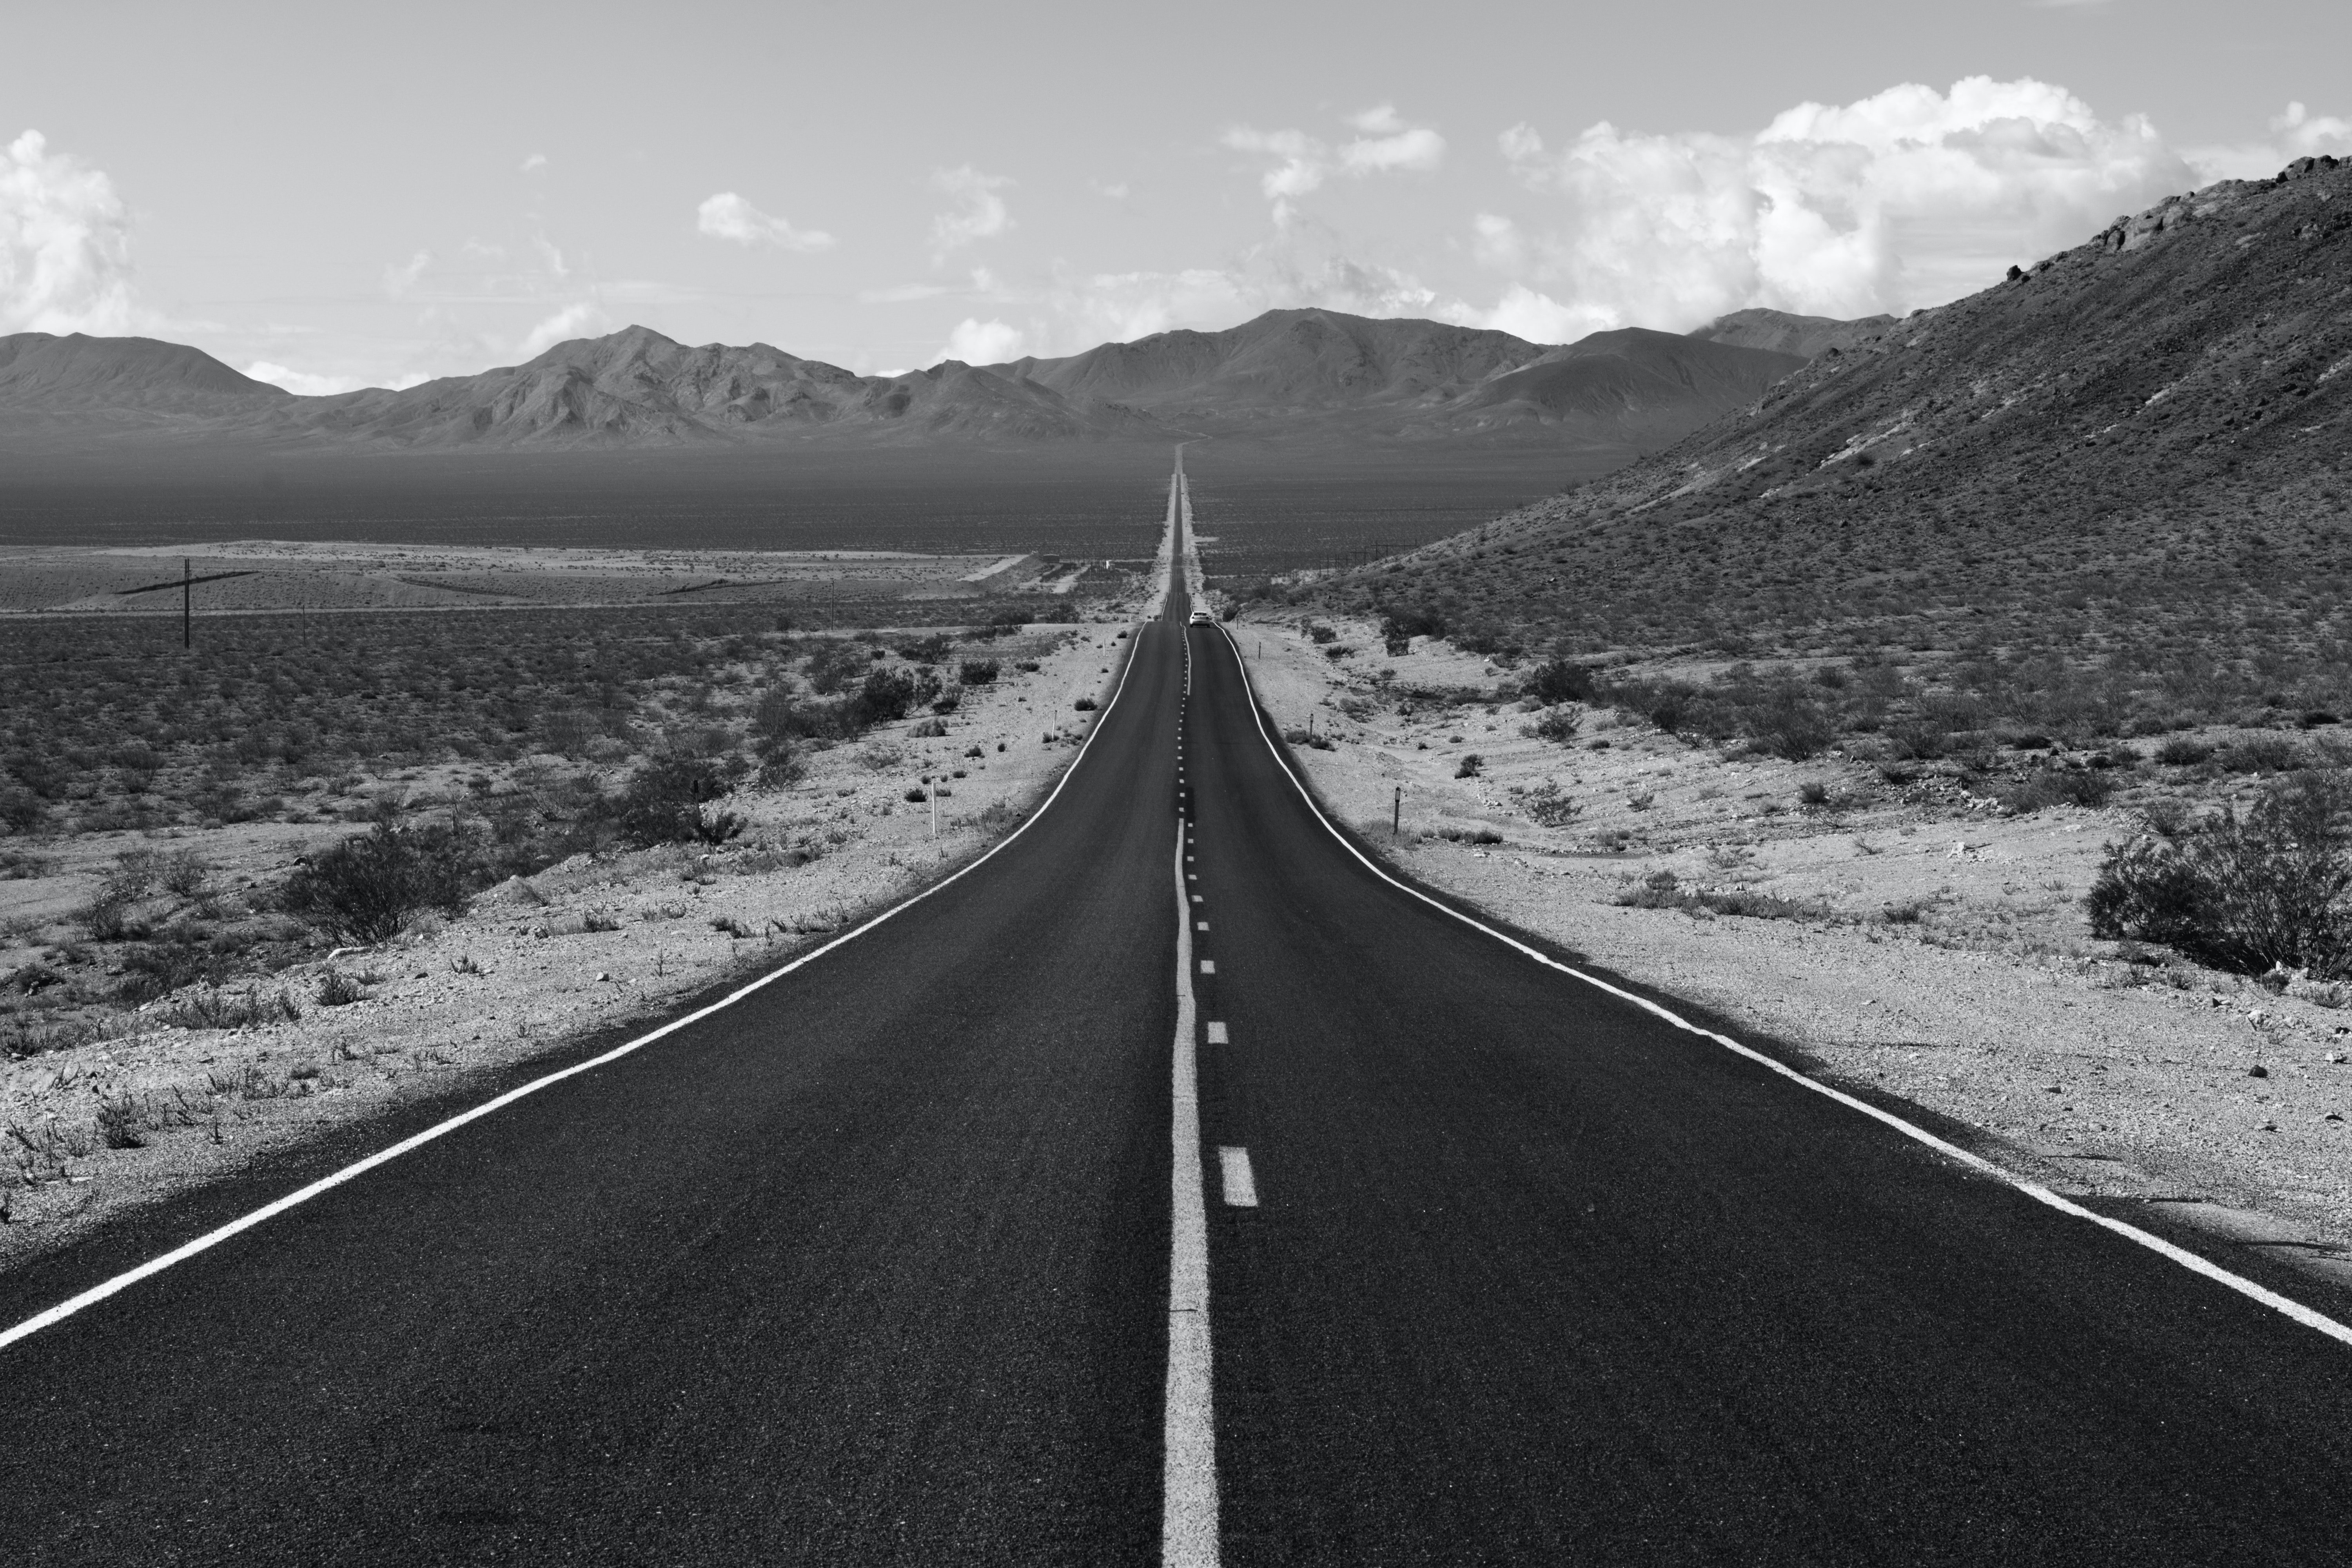 Grayscale Photo Of Road Free Stock Photo